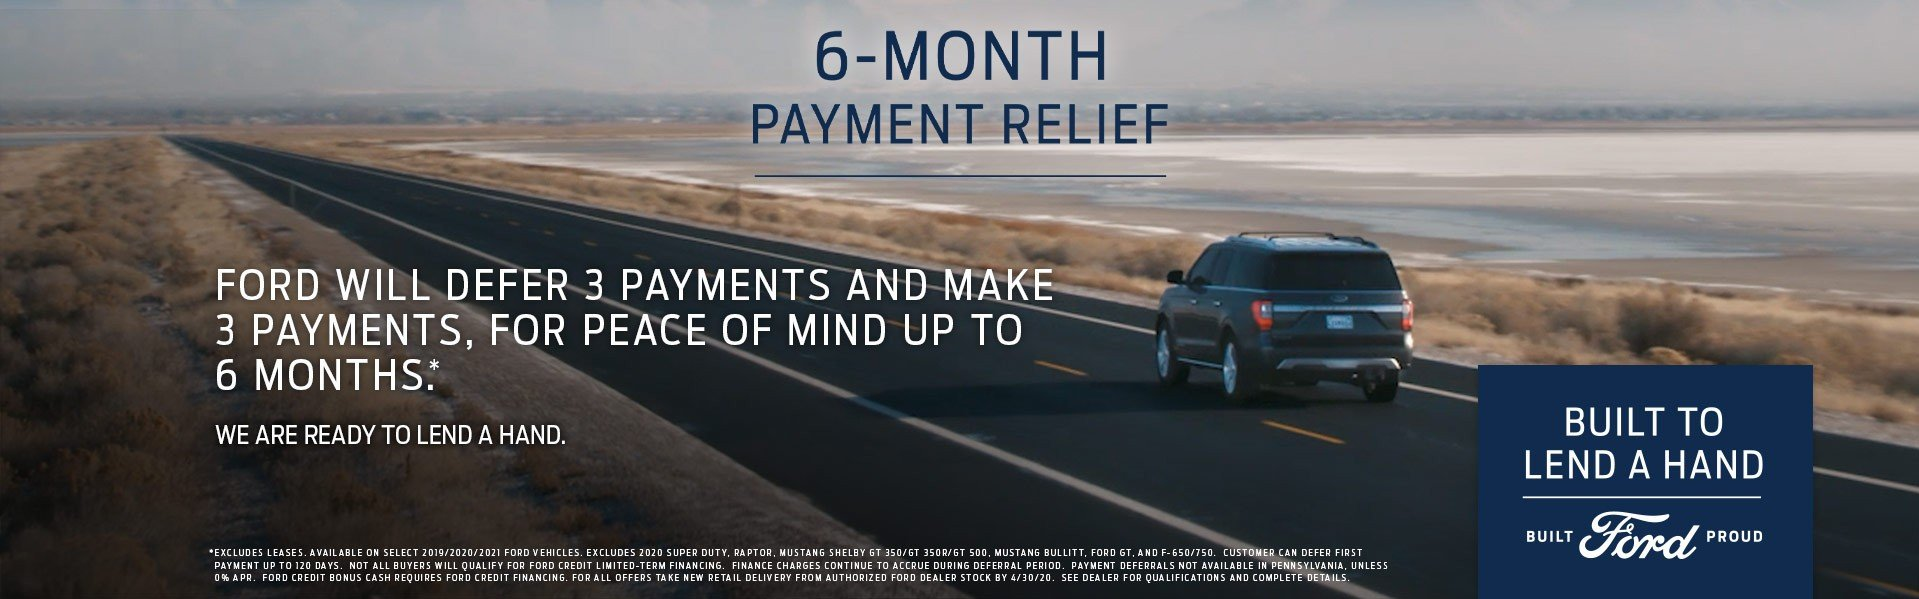 6 Months Payment Relief 4-30-2020